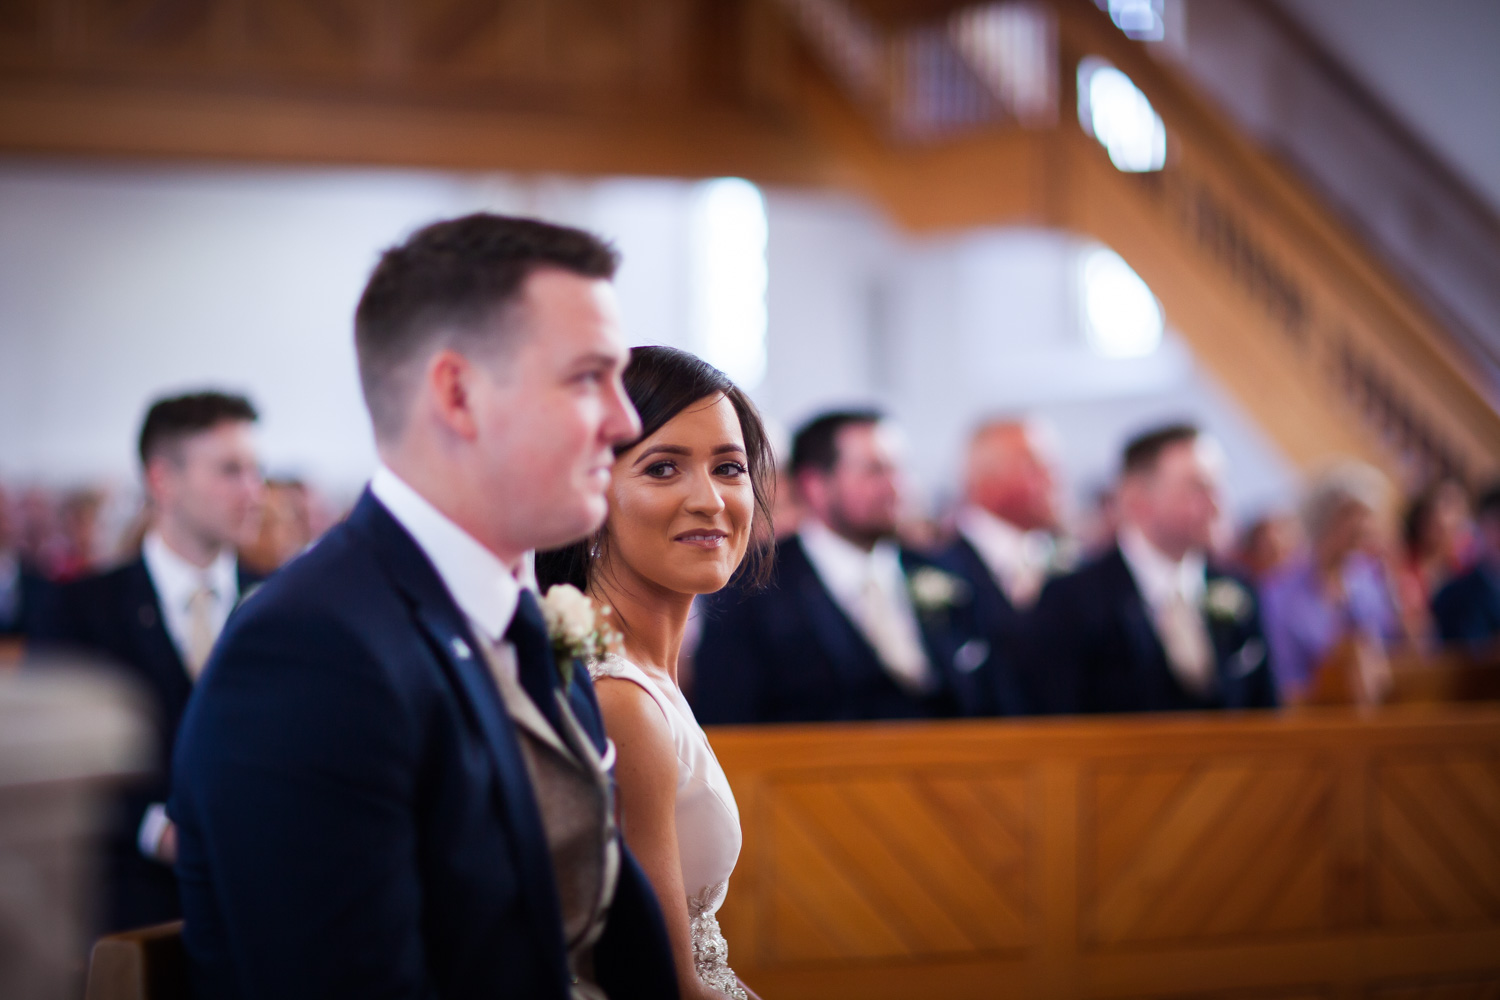 Mark_Barnes_Northern_Ireland_wedding_photographer_redcastle_hotel_Donegal_Wedding_photography_Donegal_wedding_photographer-19.jpg